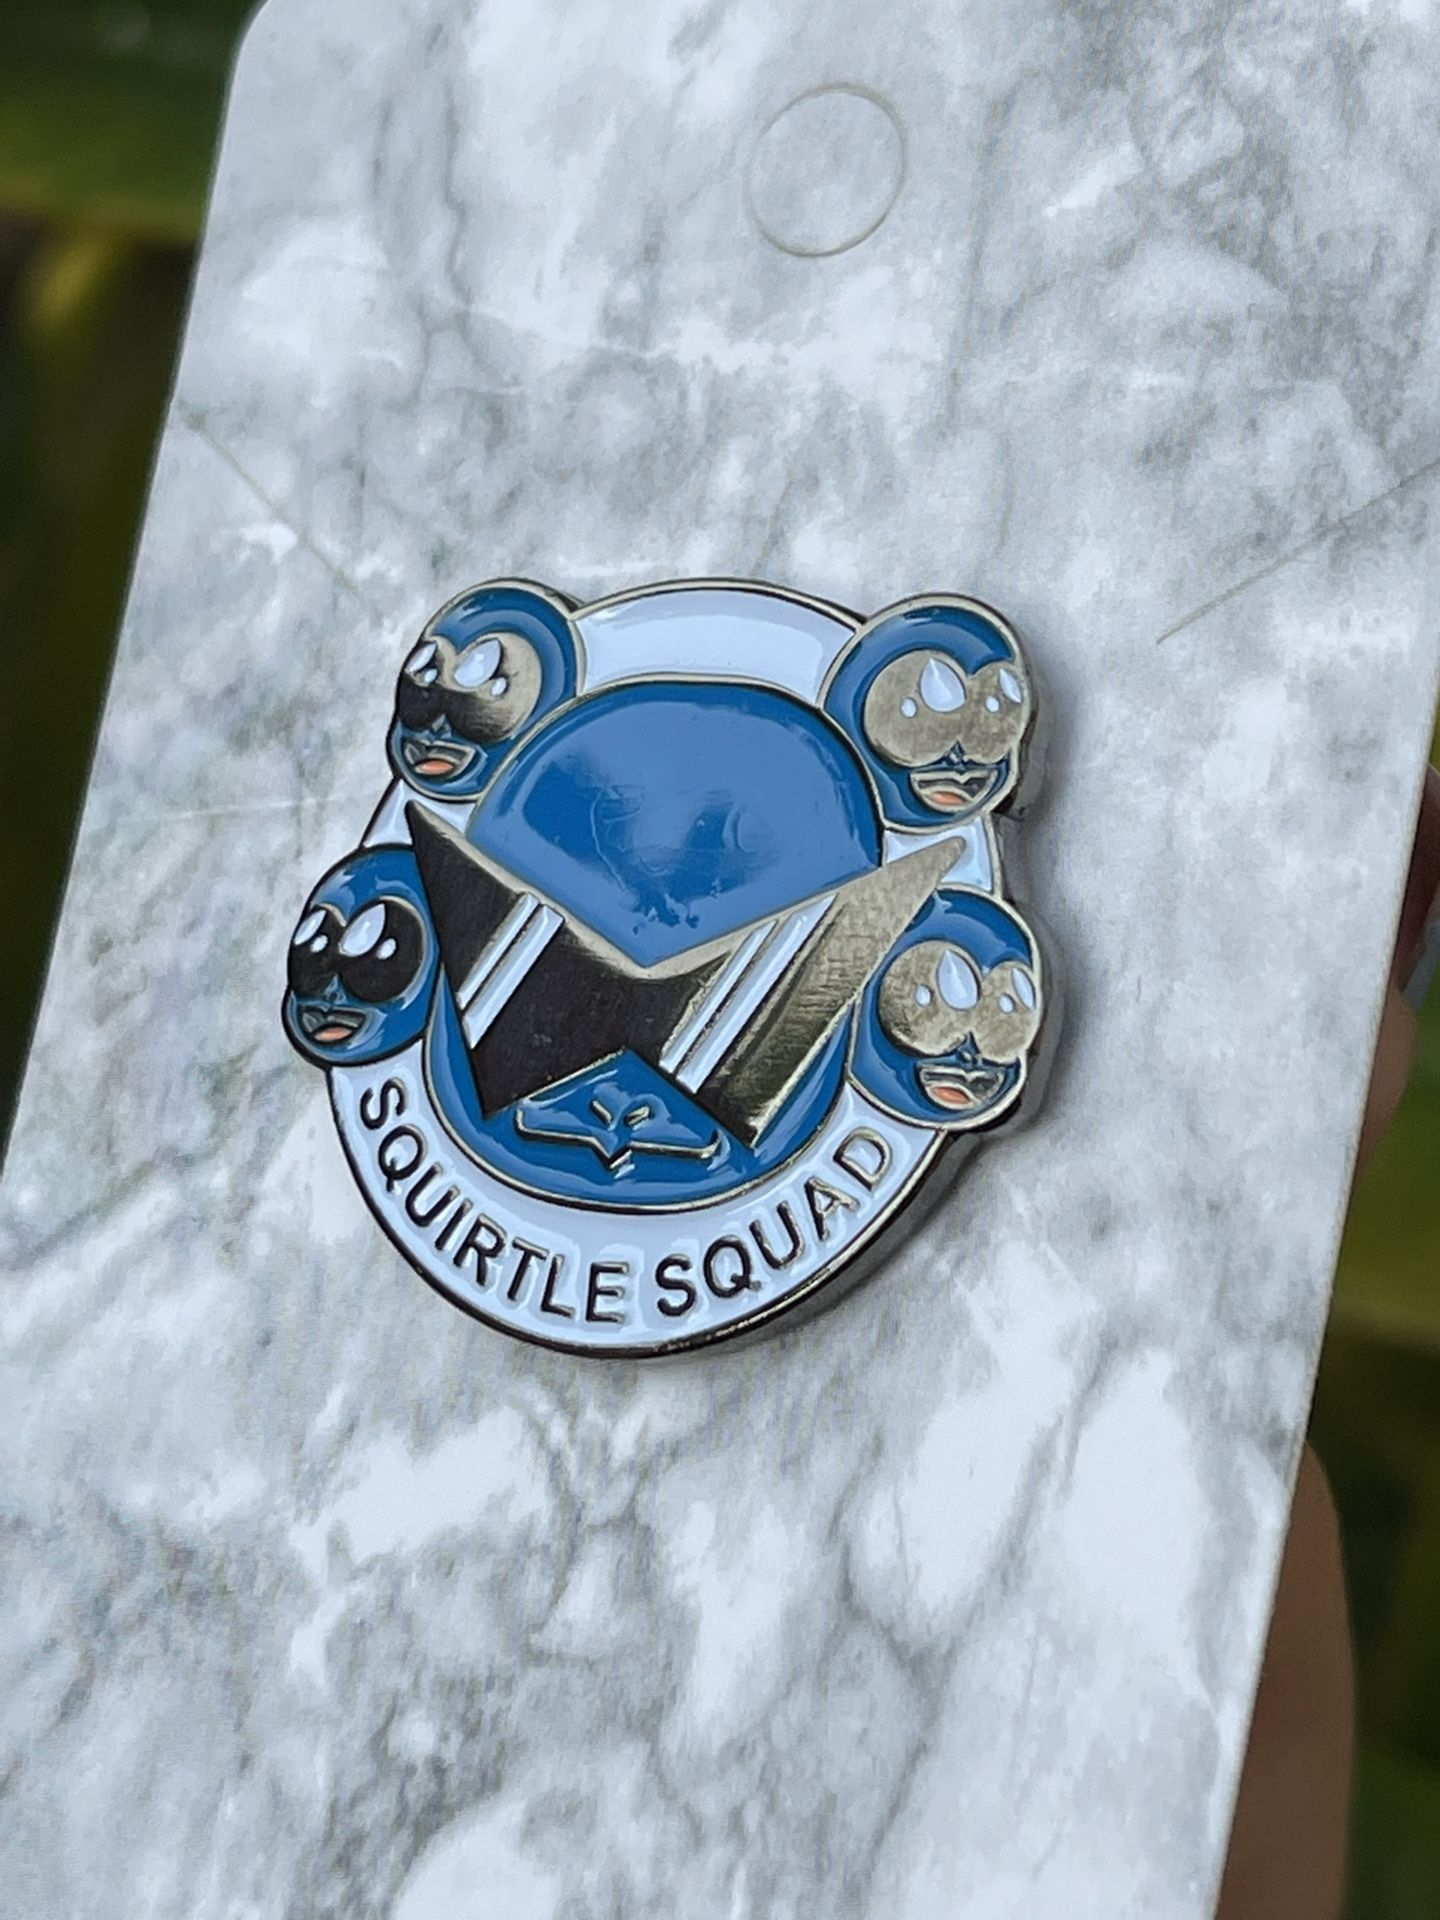 Squirtle Squad Pokemon Pin